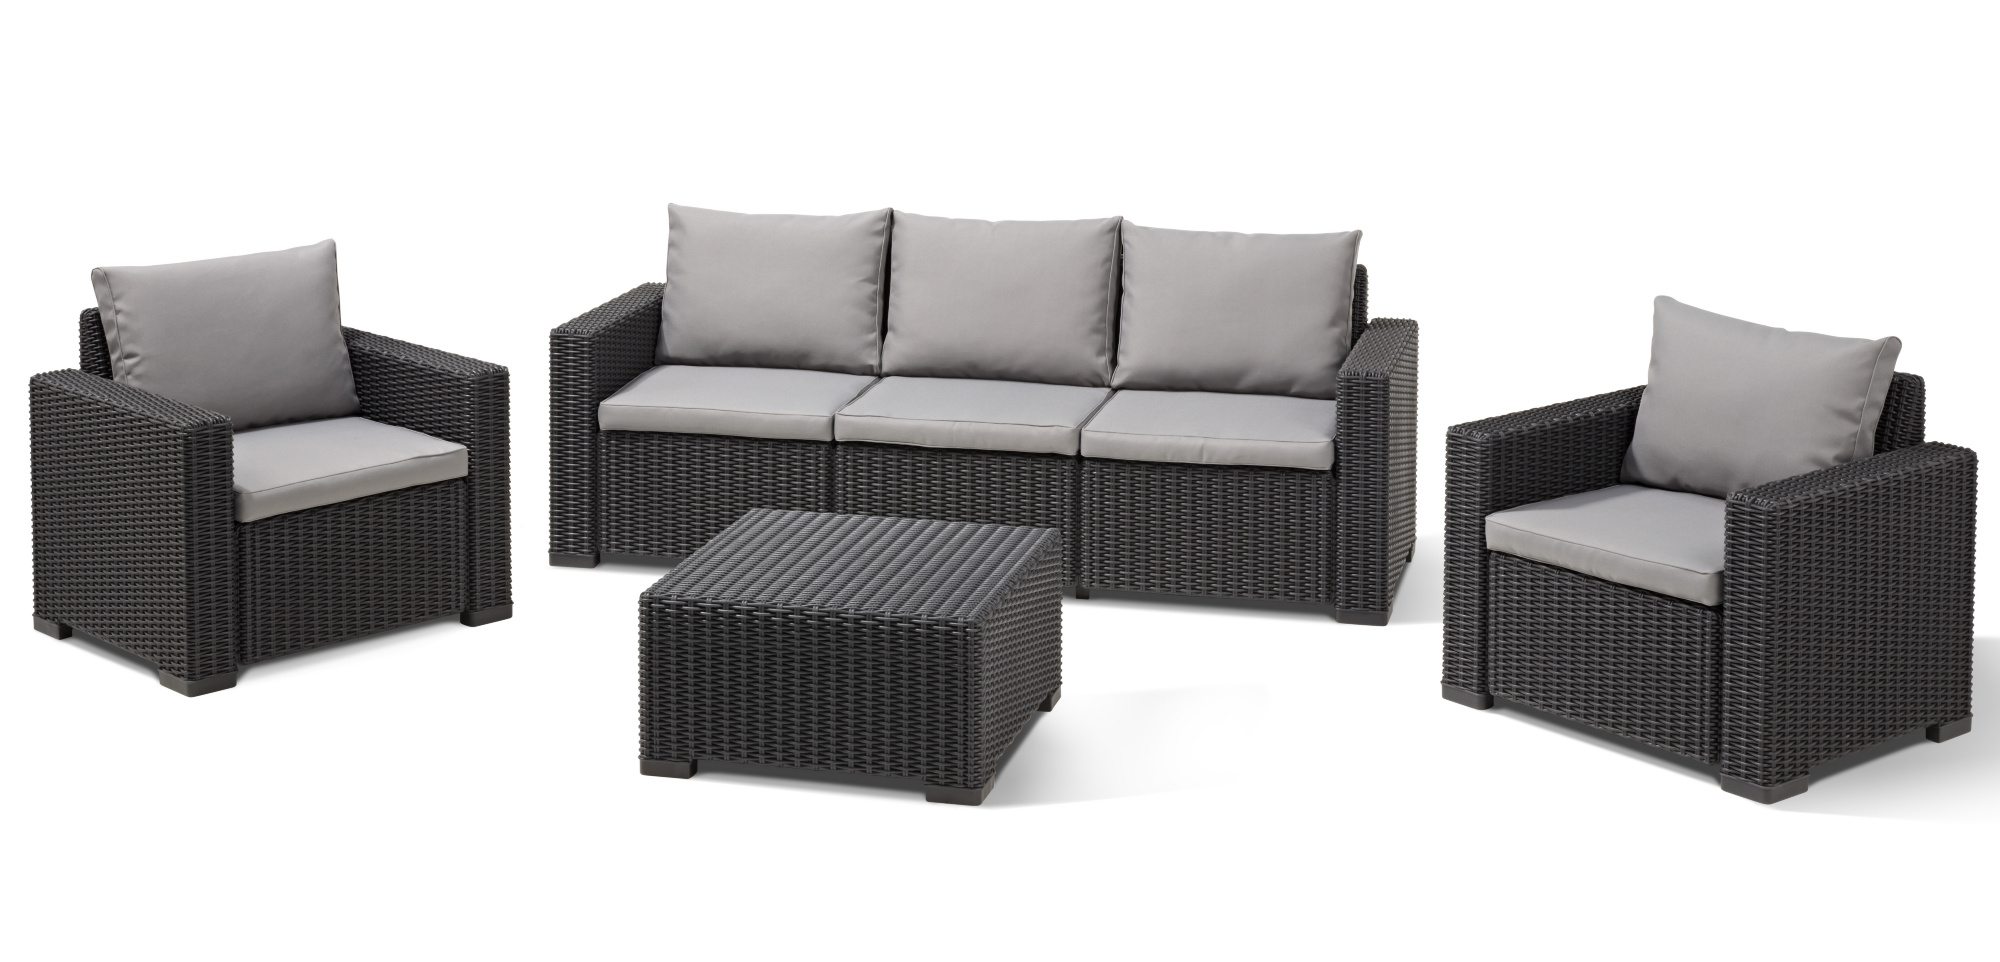 Salon De Jardin Boston Allibert California Lounge Set Graphite Three Seater